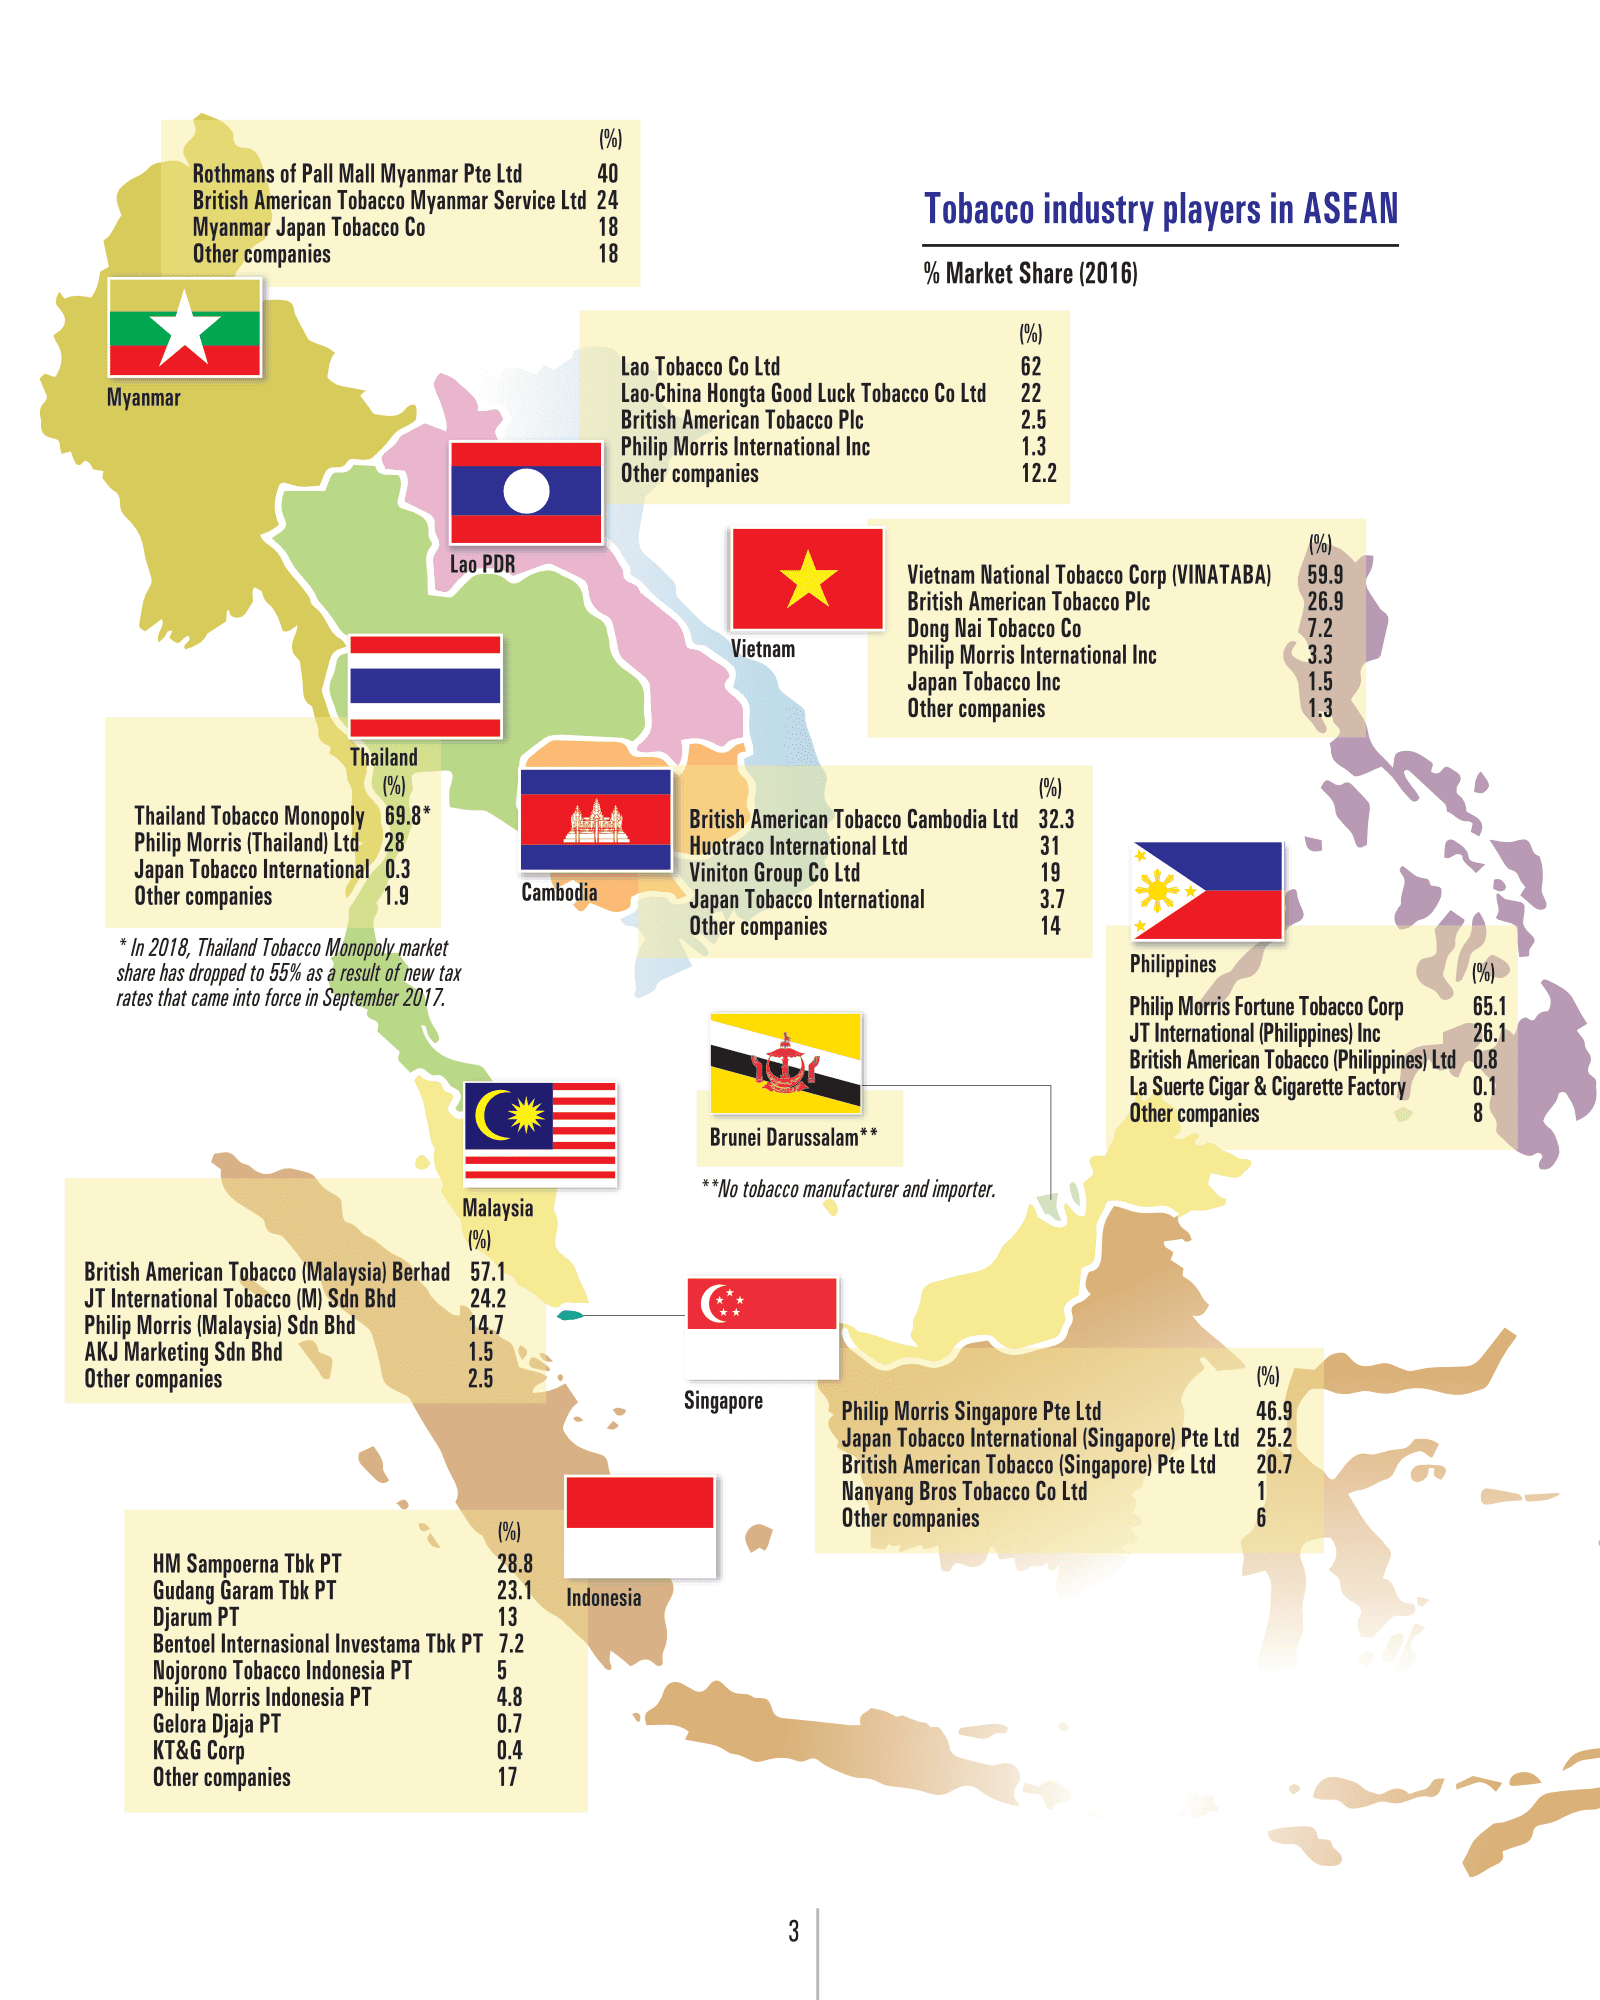 Tobacco Industry Players in ASEAN